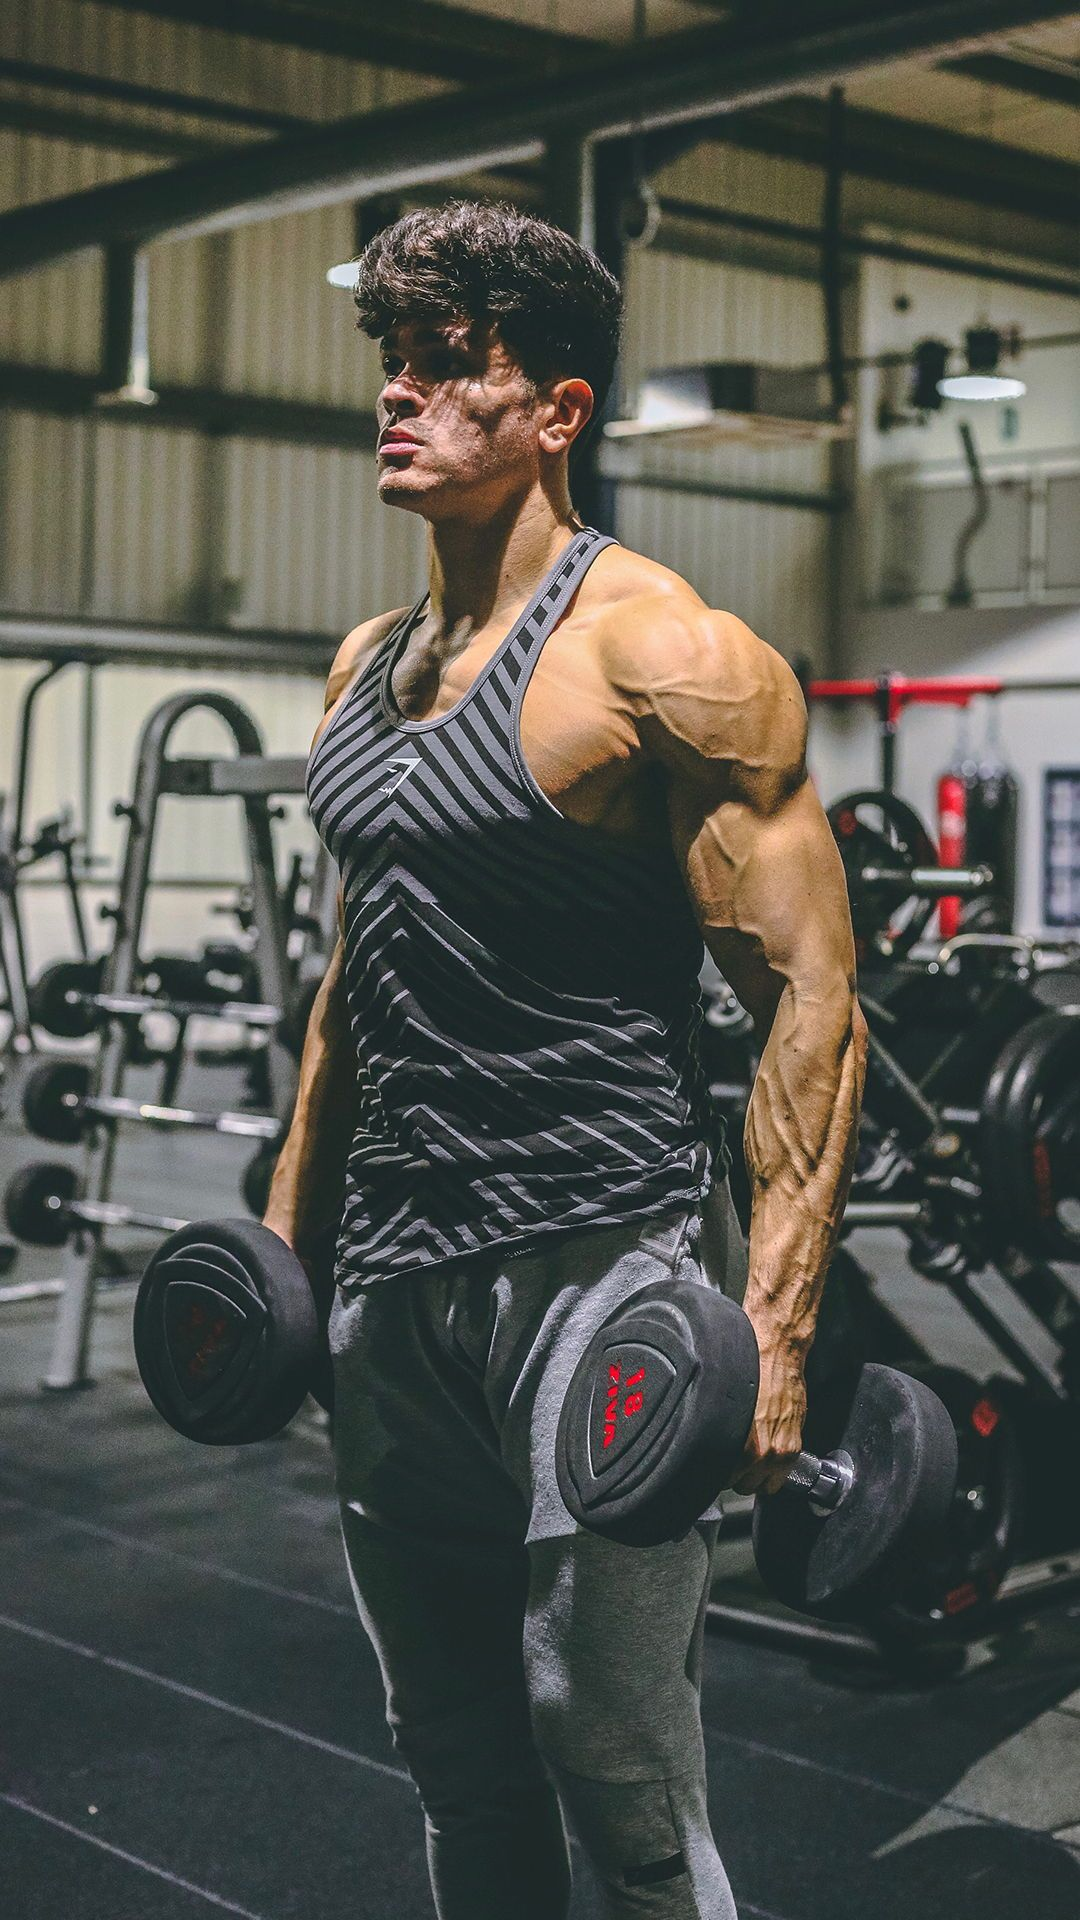 Harry Sellers Harry Sellers Gettin Hot And Sweaty Workin On Those Biceps Gymshark Gym Sweat T Gym Photography Fitness Photography Fitness Photoshoot